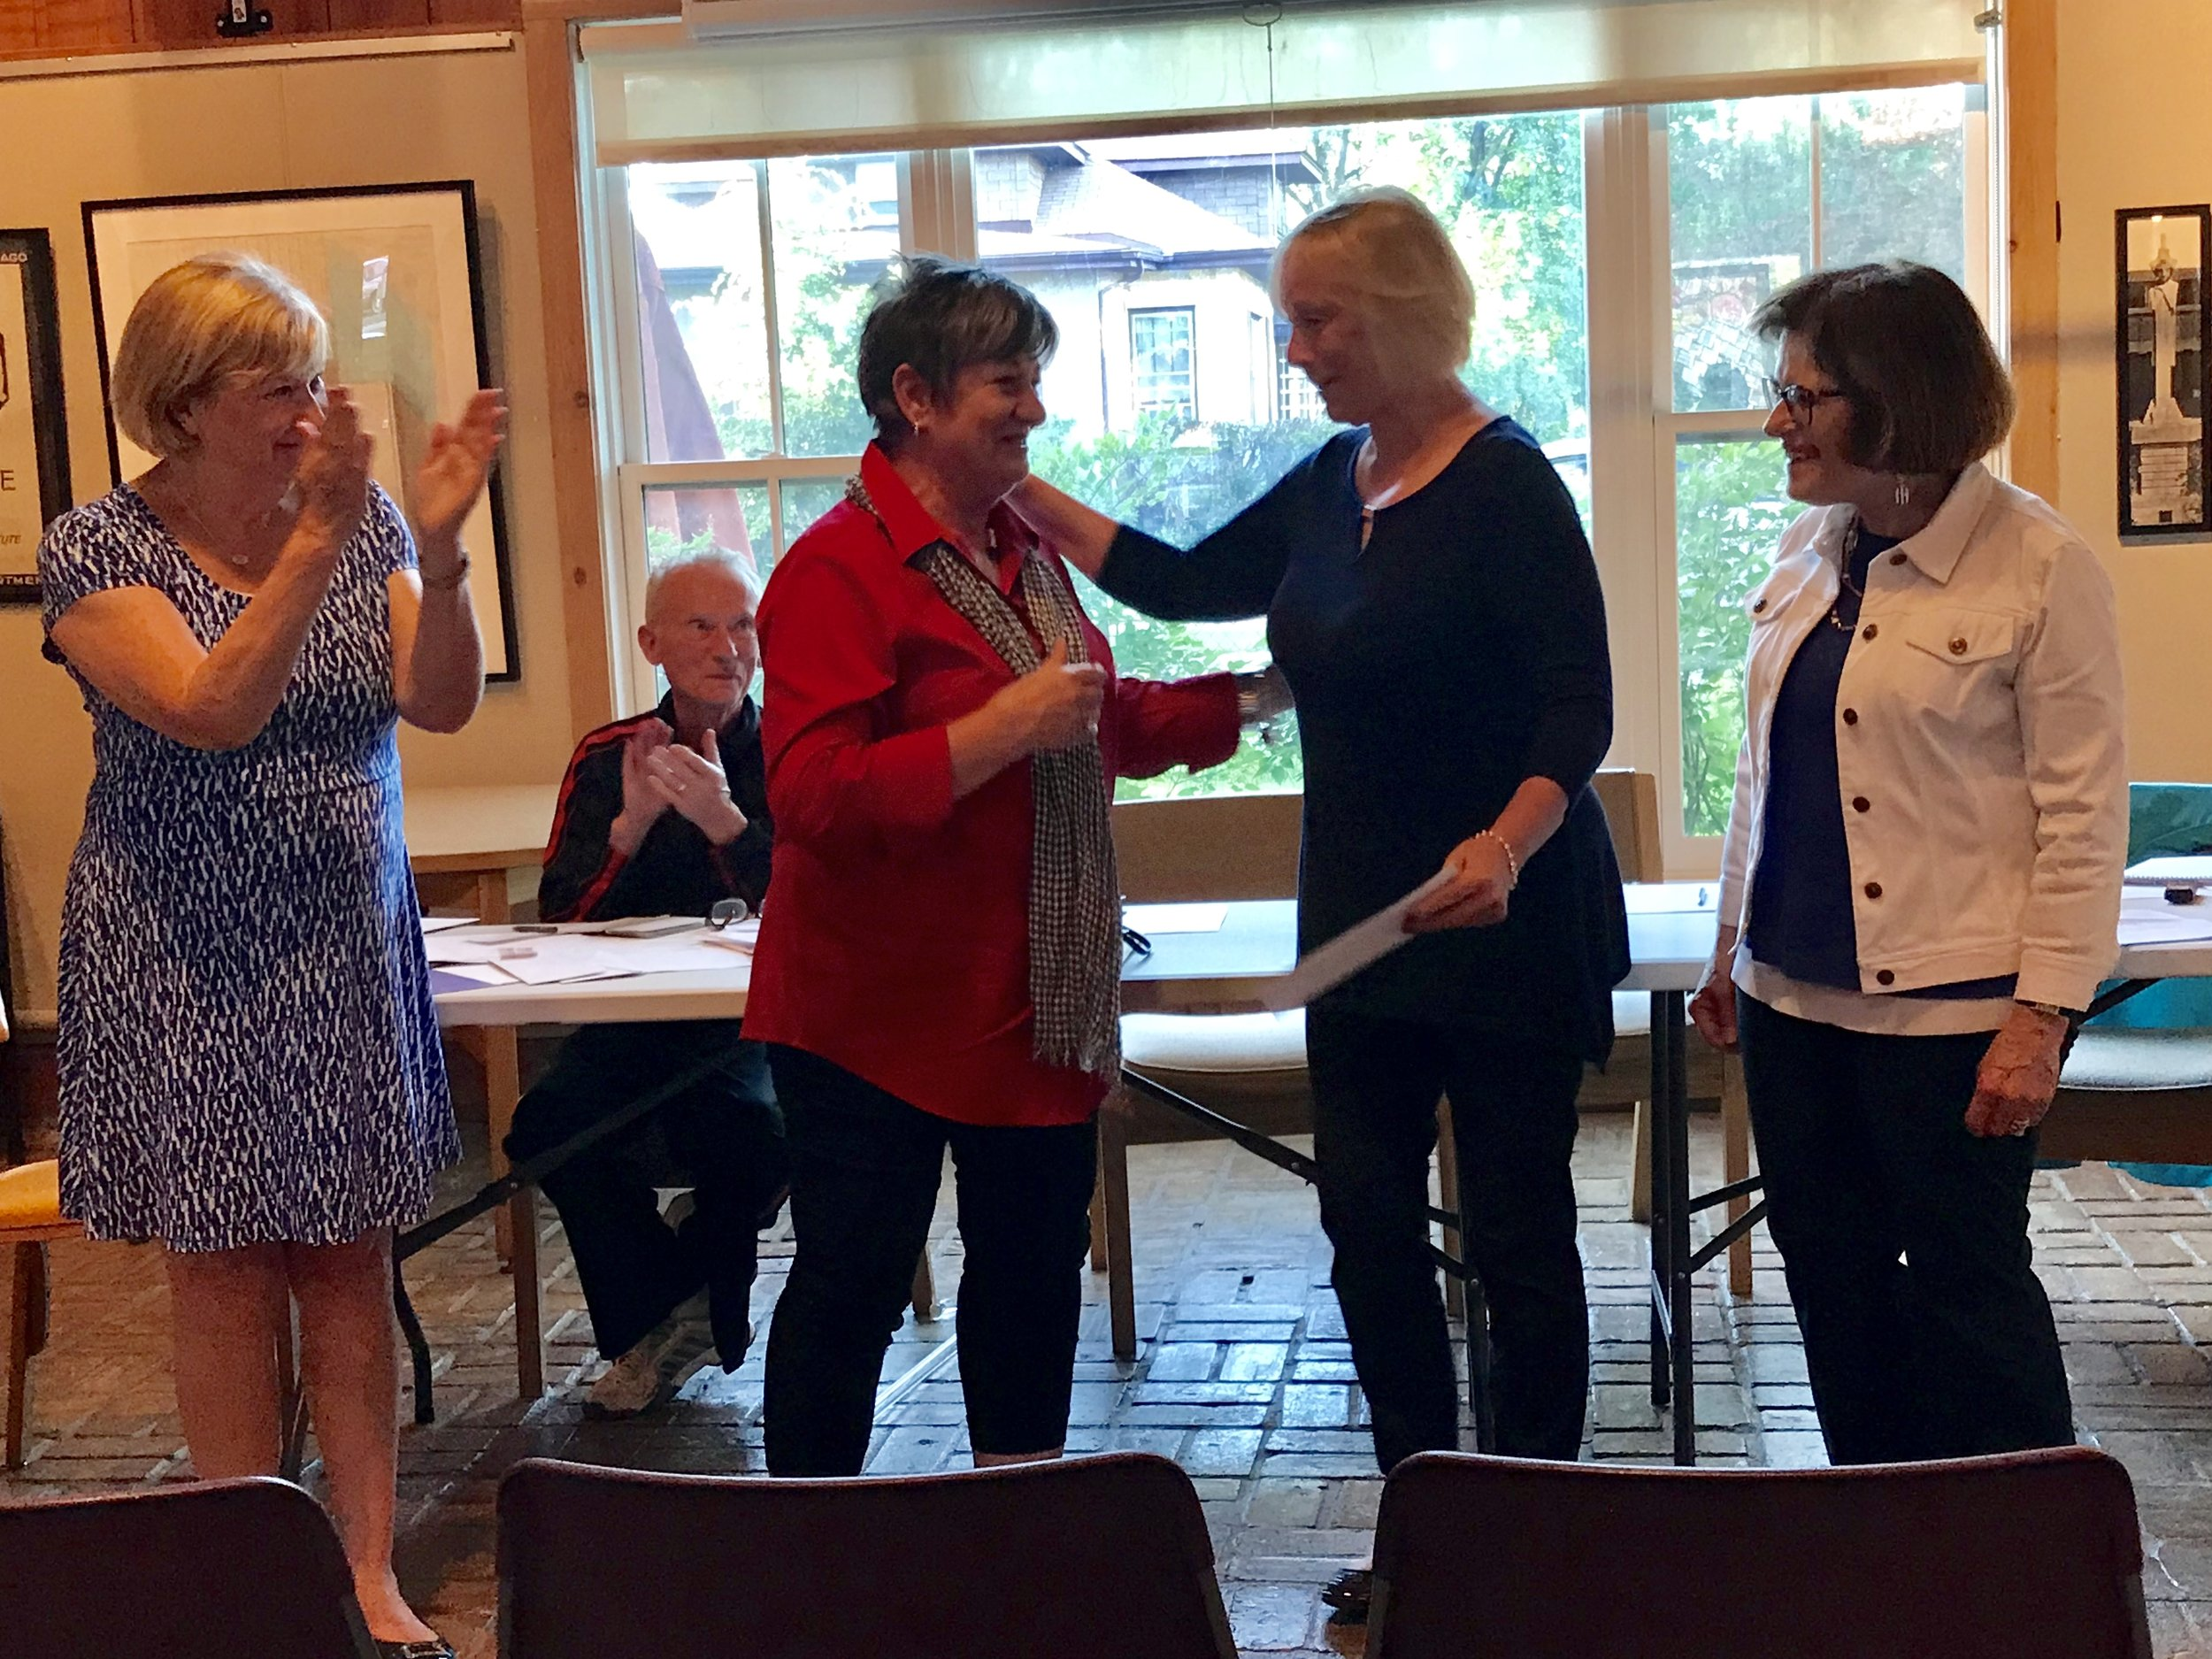 June 5, 2018: Park Ridge Civic Orchestra receiving donation check from the 20th Century Club of Park Ridge.